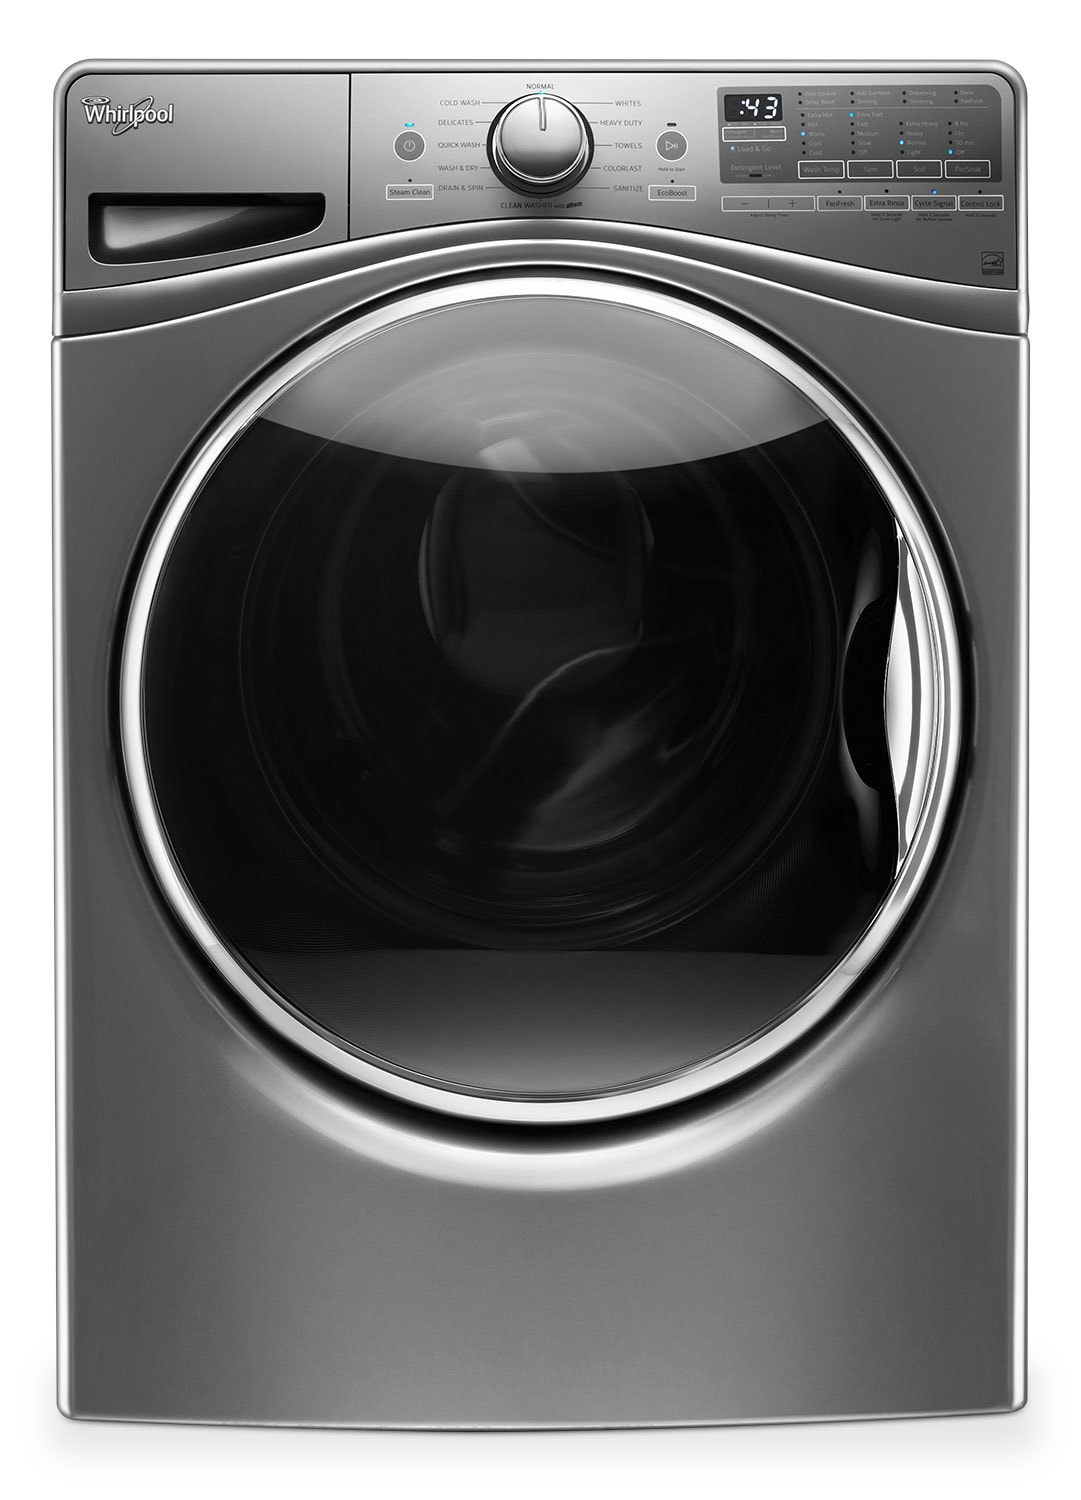 Washers and Dryers - Whirlpool 5.2 Cu. Ft. Front-Load Washer – WFW92HEFC